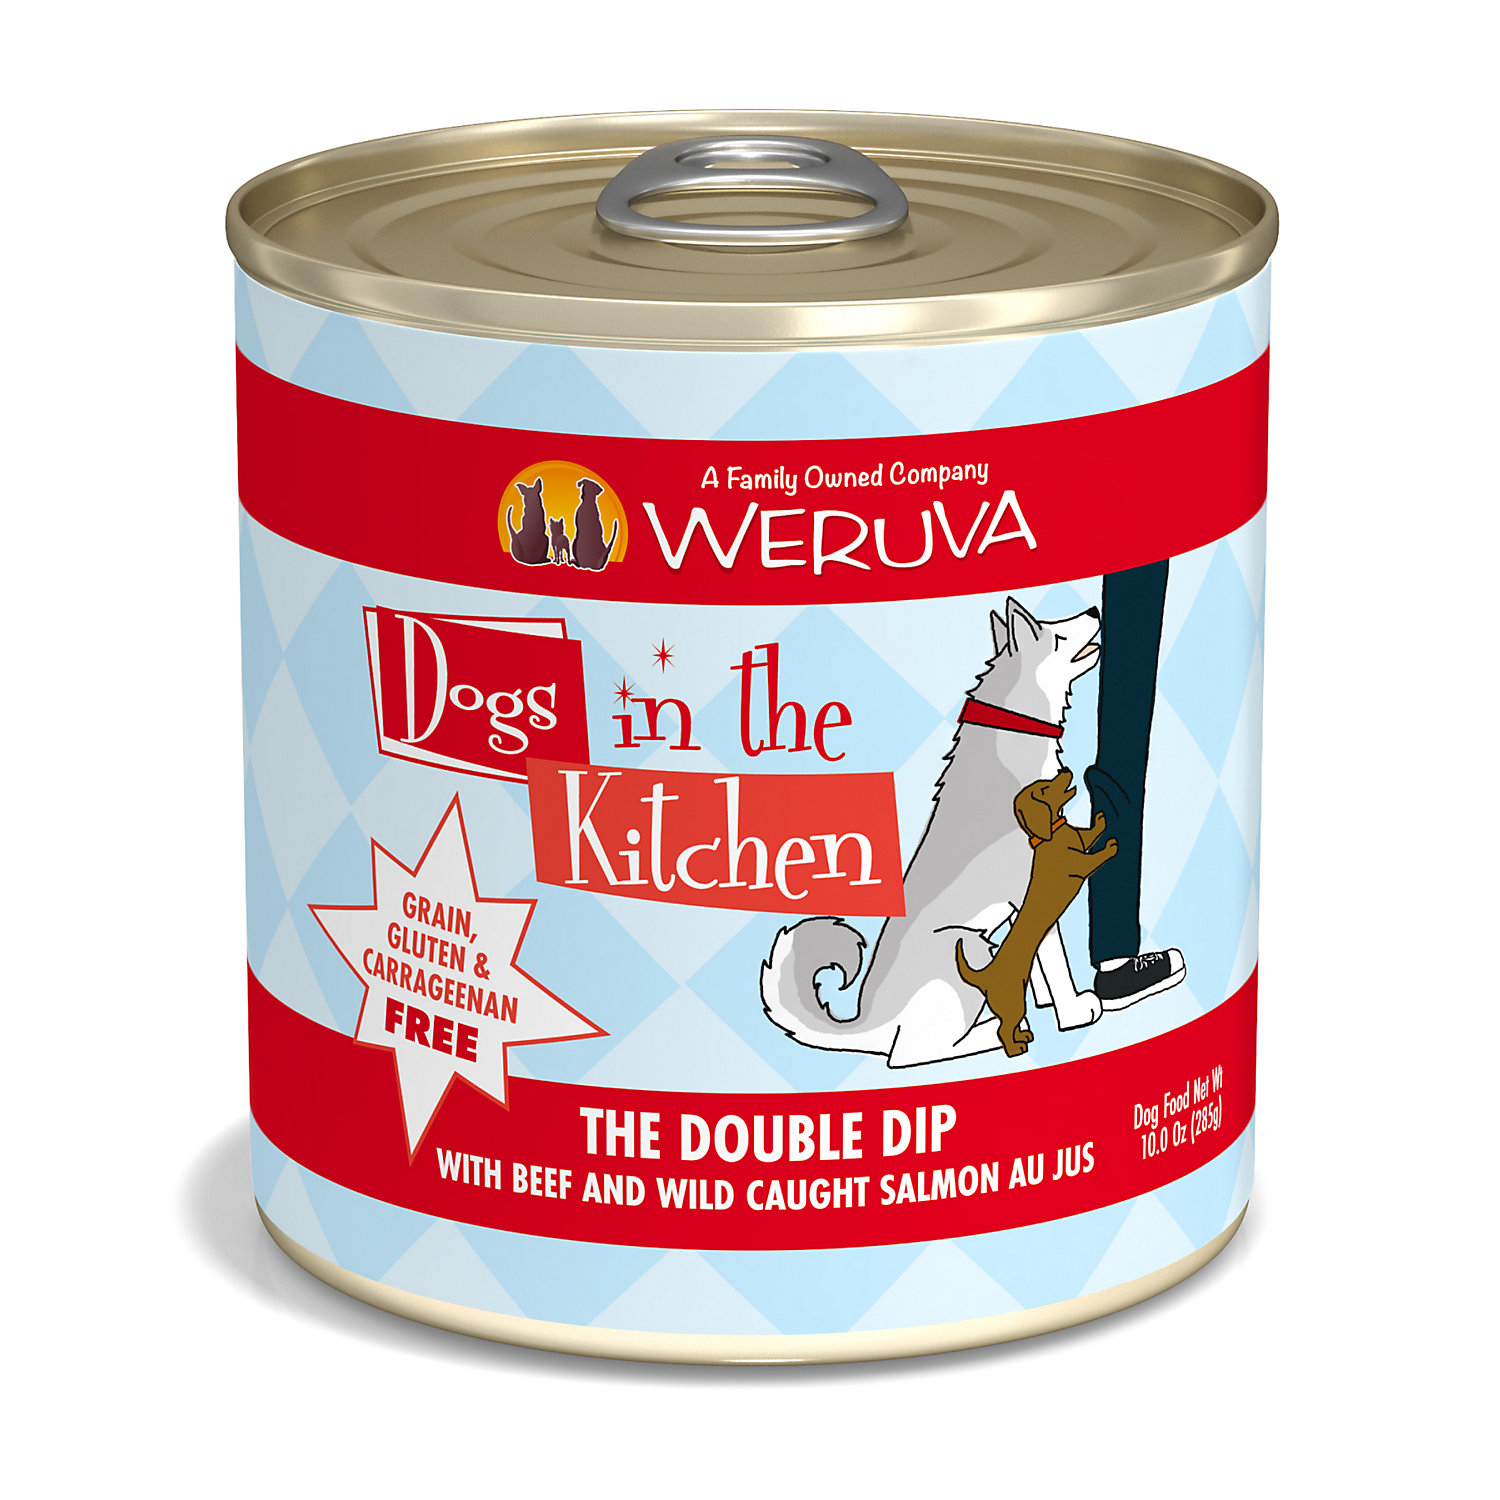 Dogs in the Kitchen The Double Dip with Beef & Wild Caught Salmon Au Jus Wet Dog Food